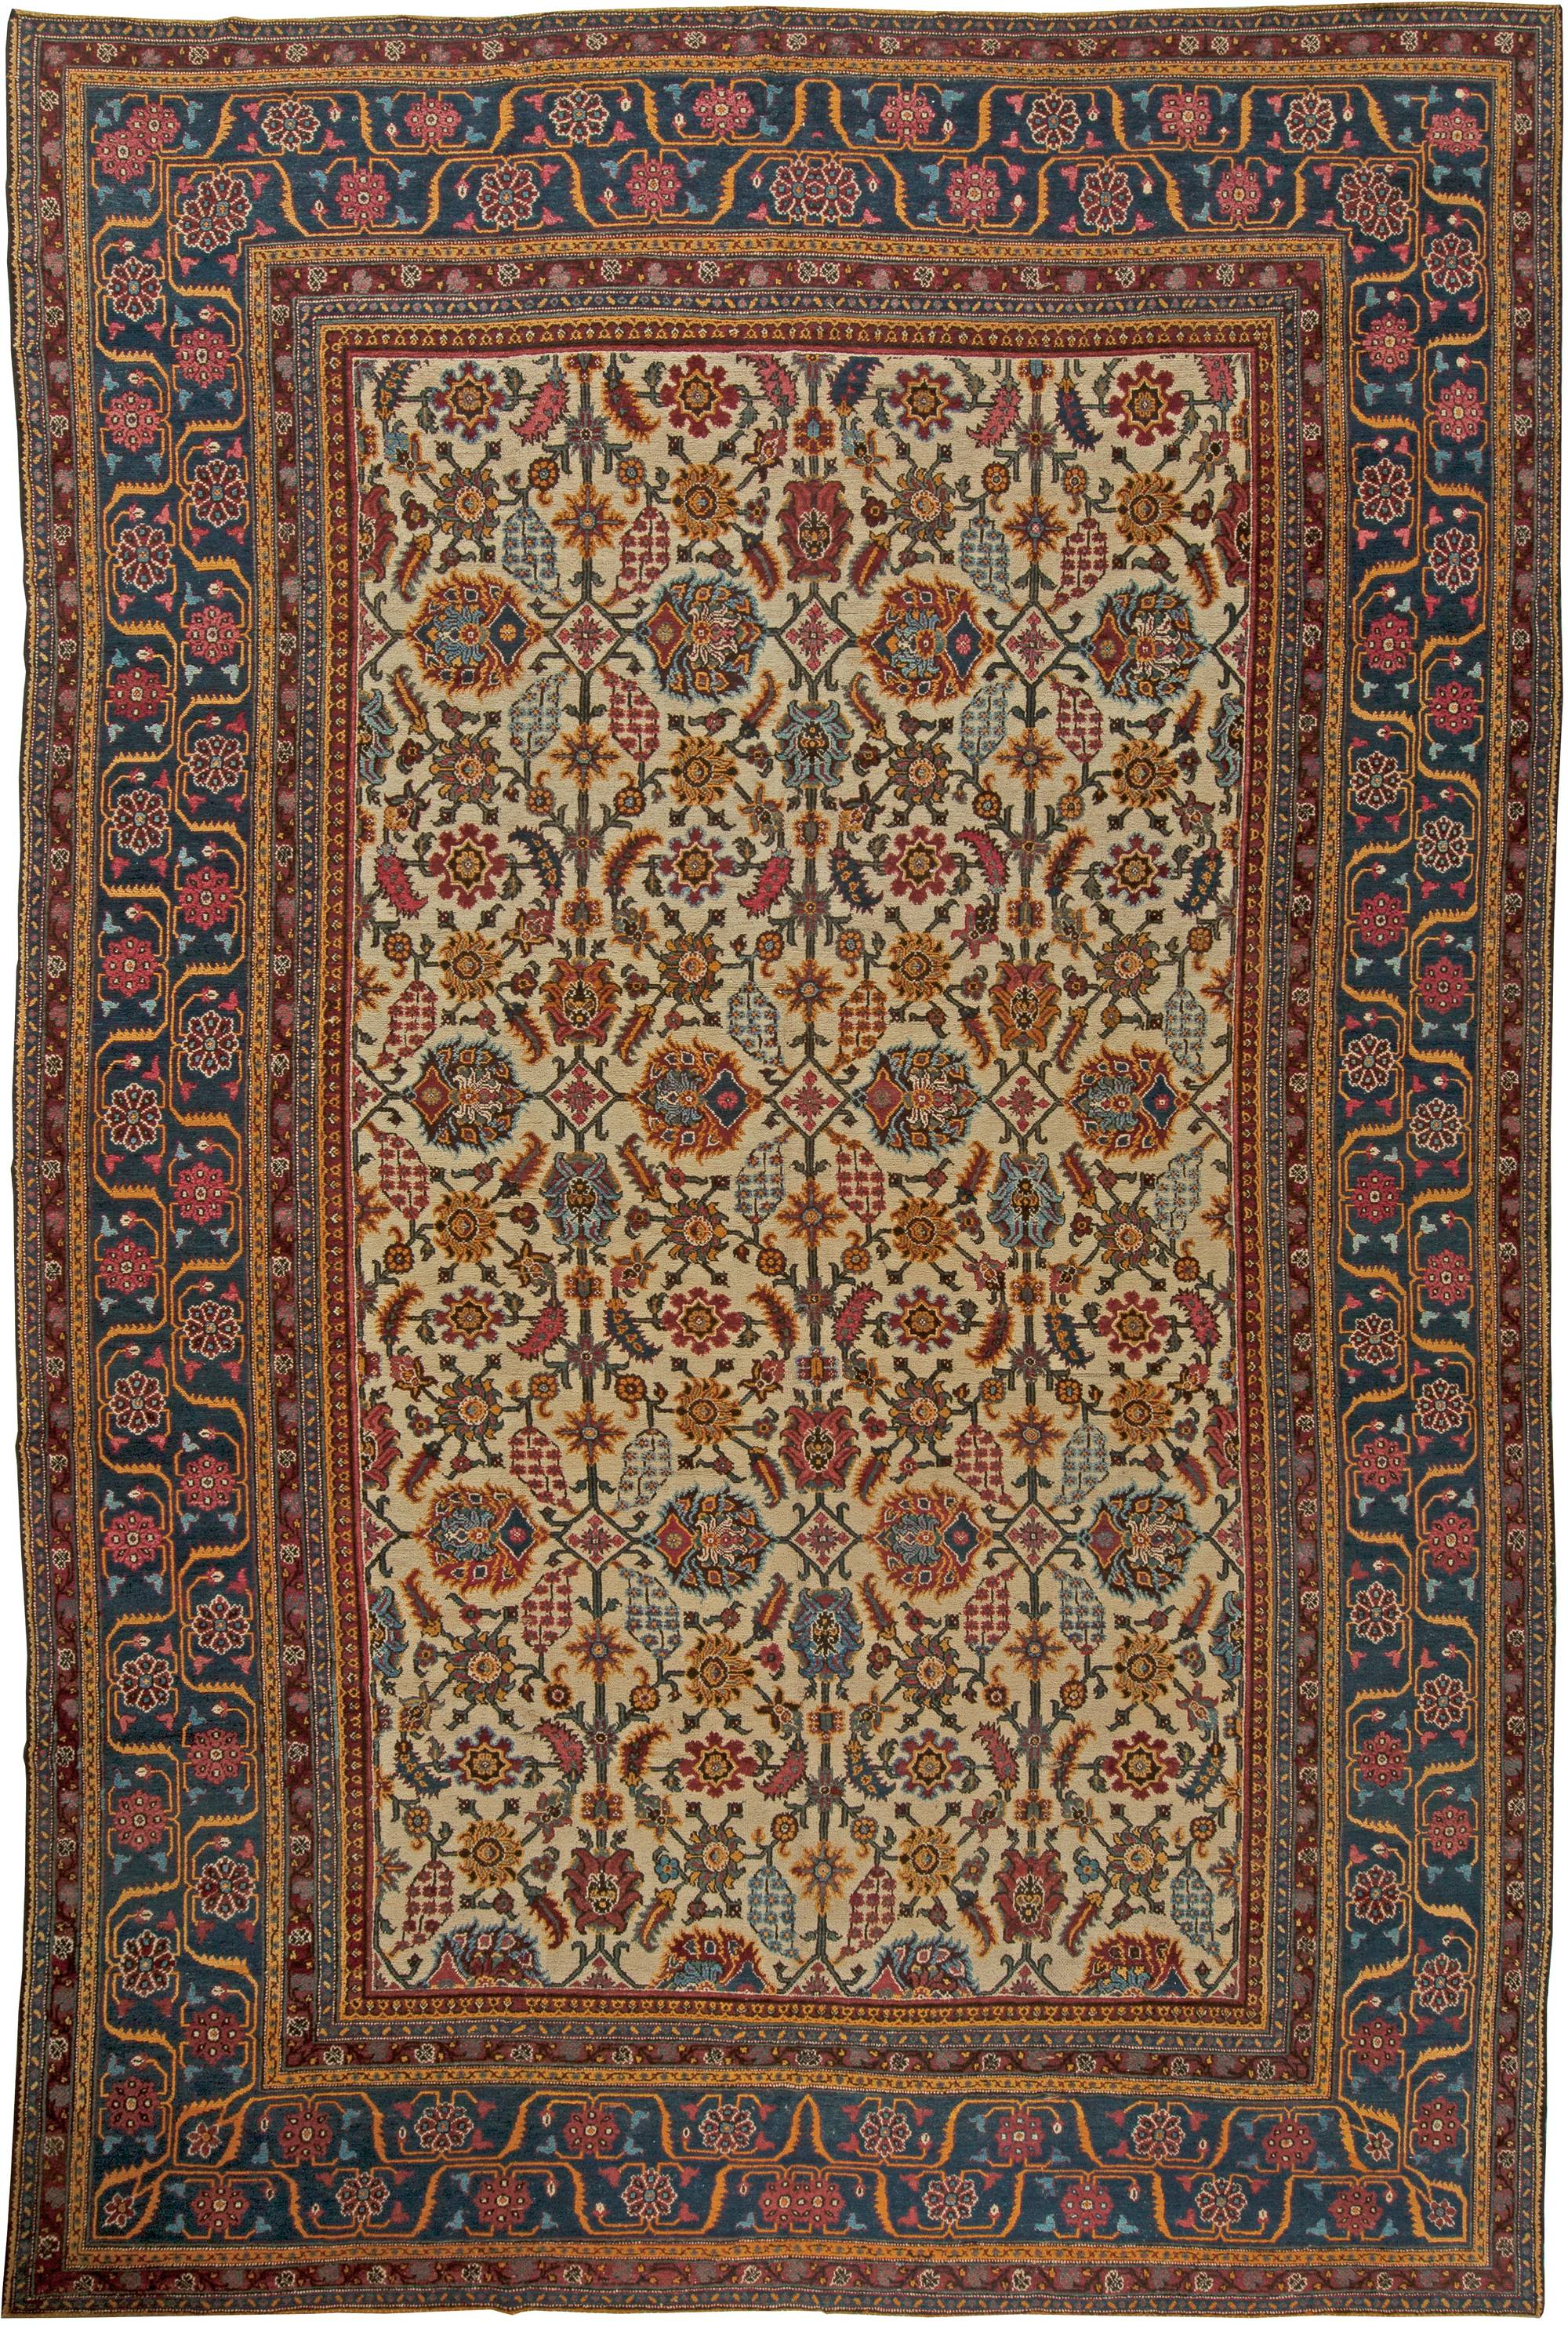 Indian Rugs Dhurrie Area Carpets For Sale Antique